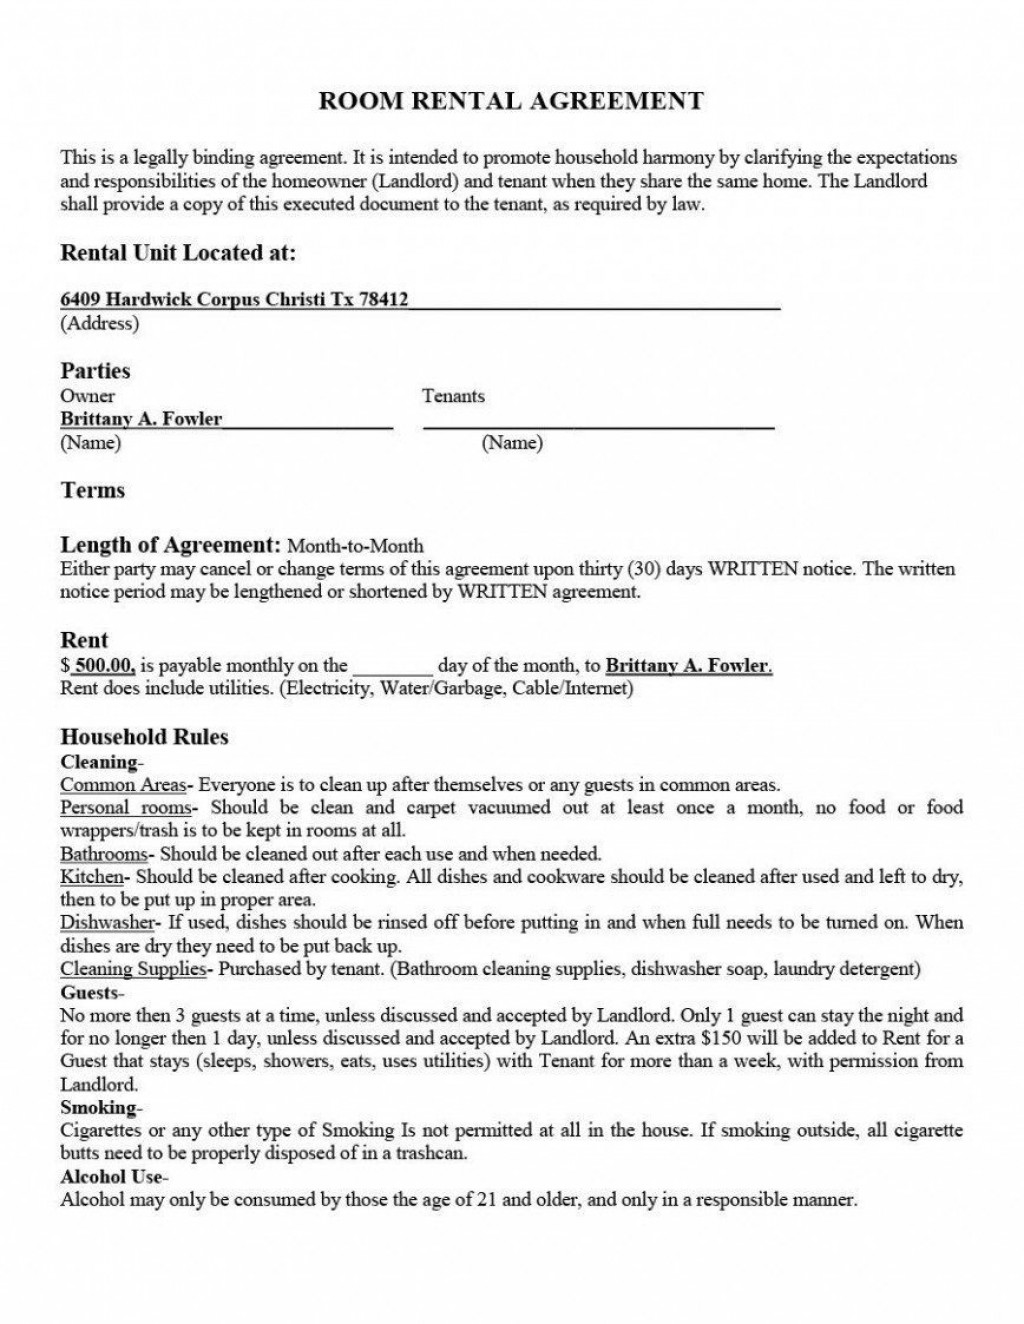 001 Unusual Housing Rental Agreement Template Free Highest Clarity Large